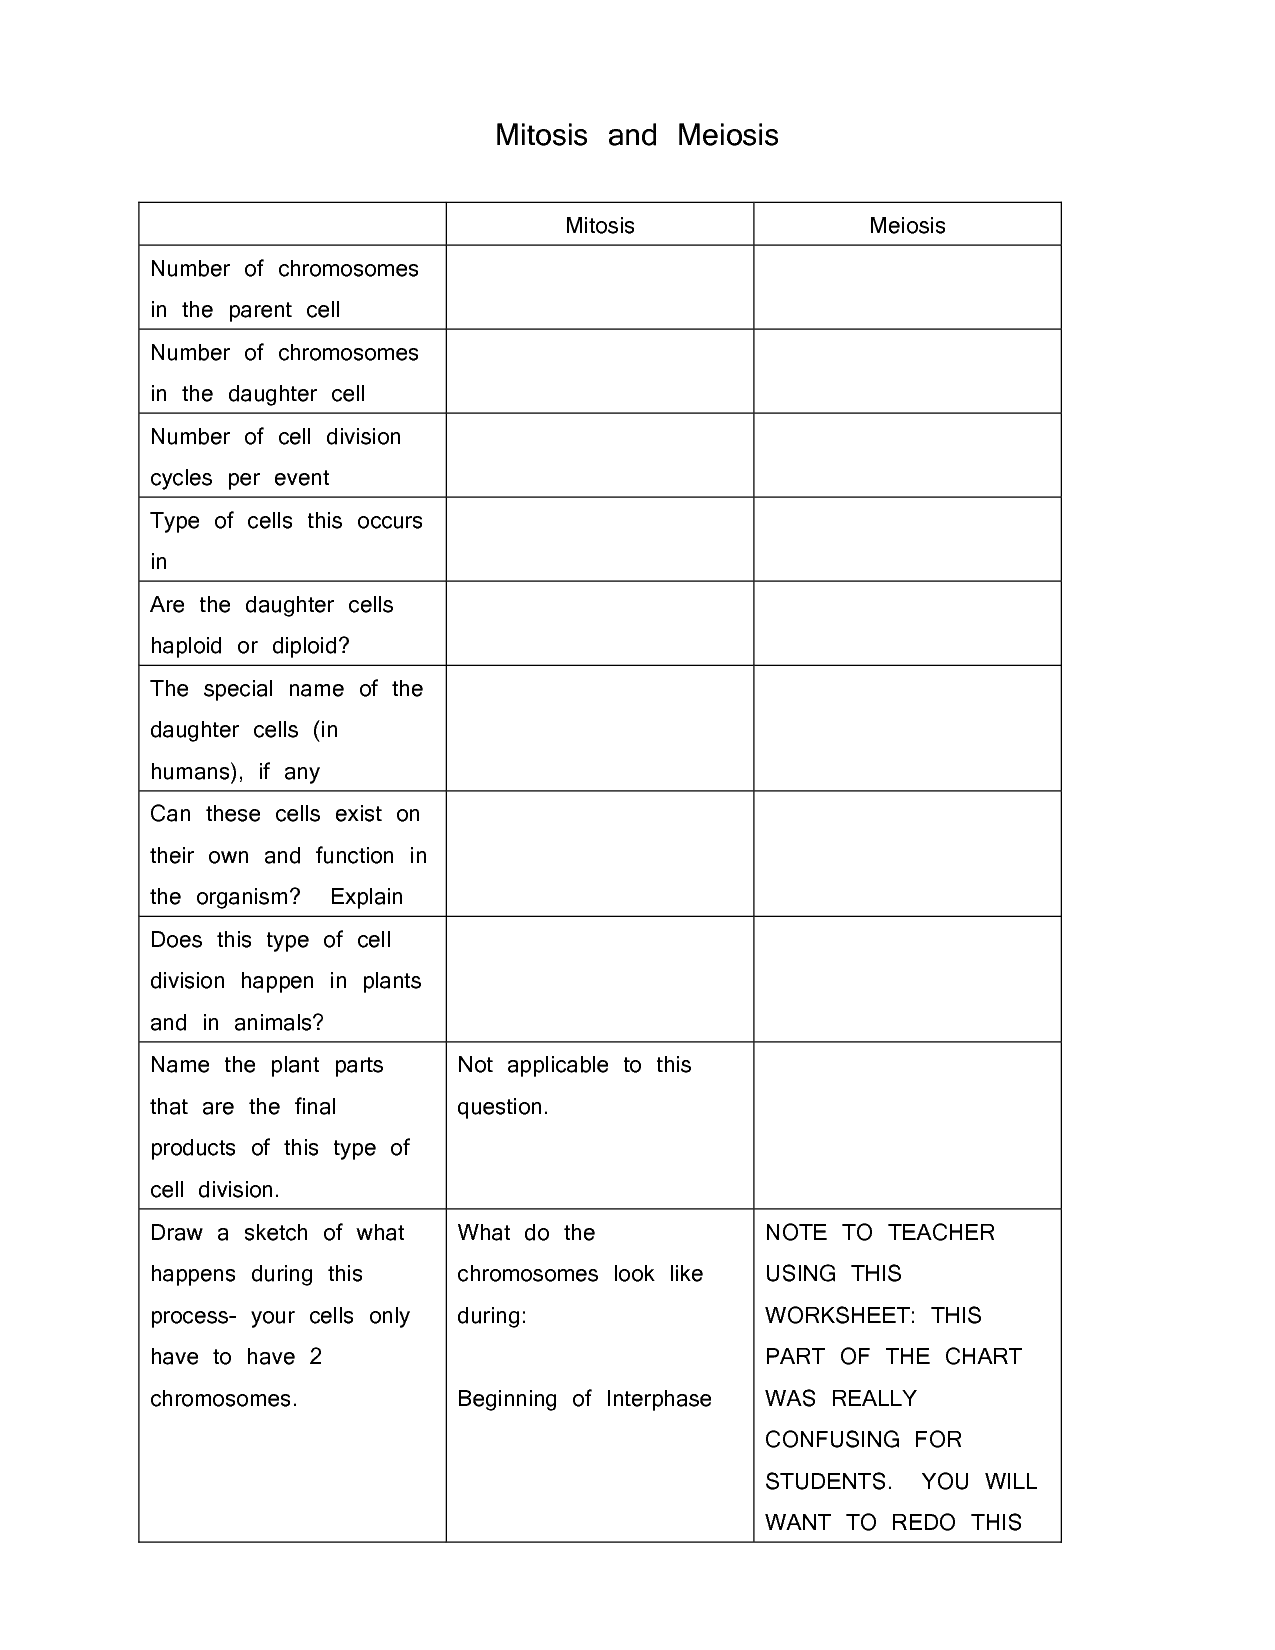 15 Best Images Of Mitosis And Meiosis Worksheet High School